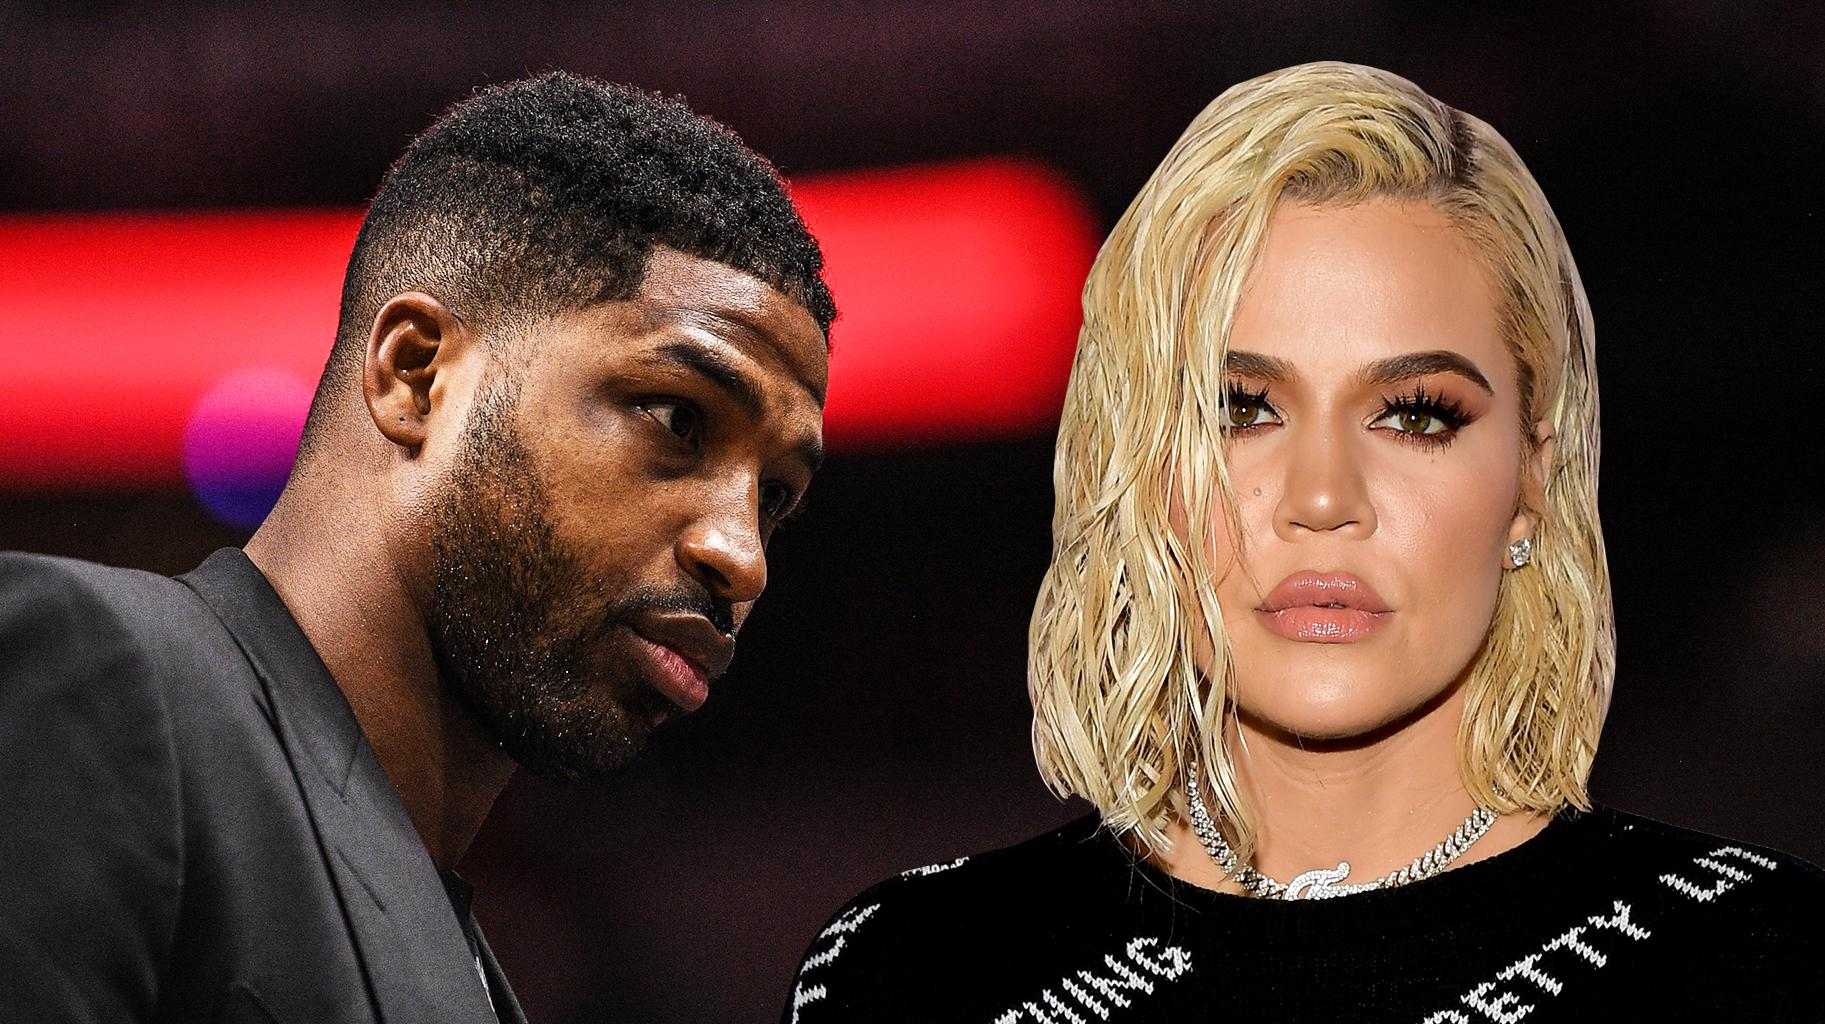 Tristan Thompson Calls Khloe Kardashian His Queen After She Posts This Bomb Photo